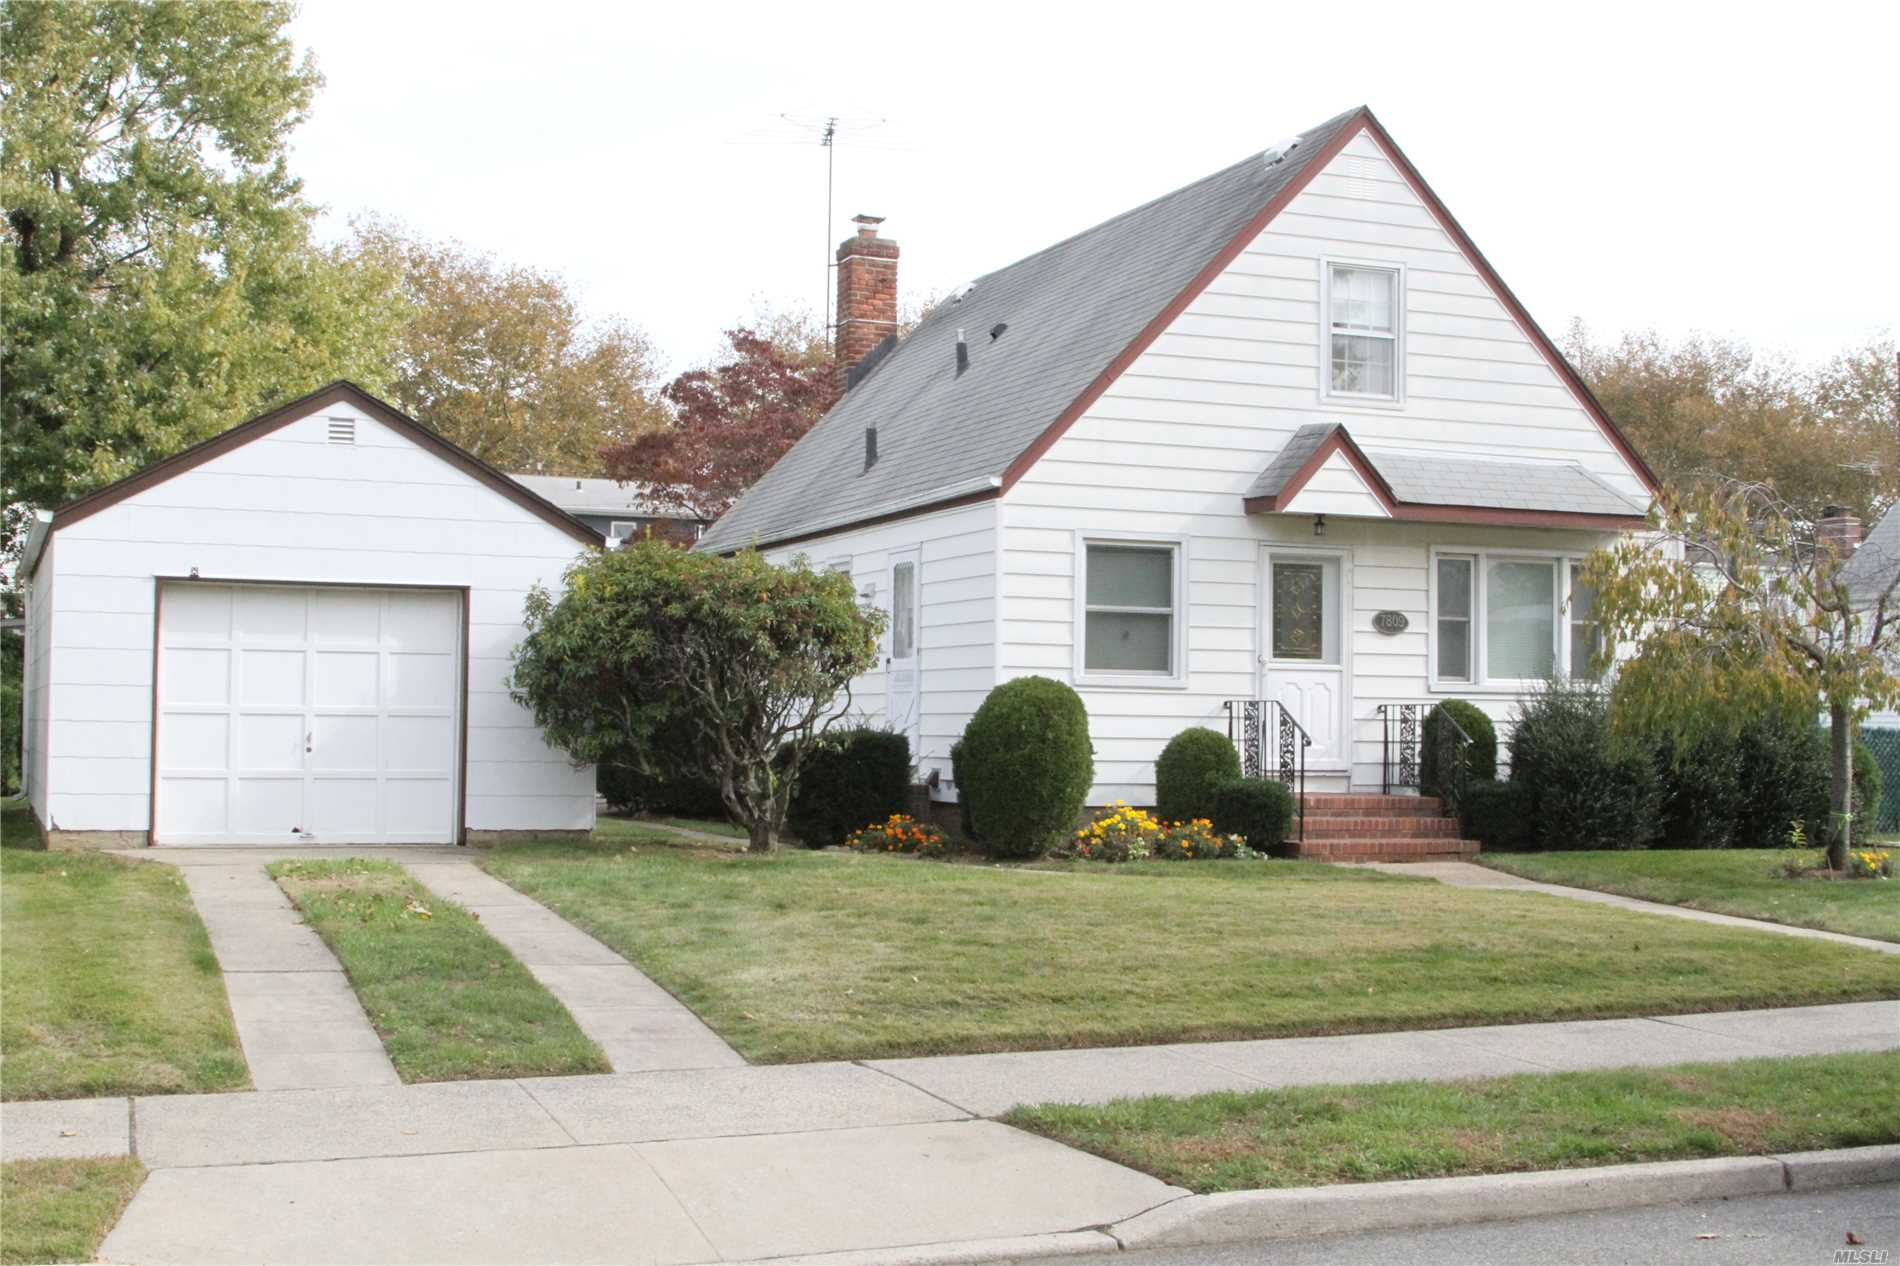 Excellent Cape At New Hyde Park With 3 Bedroom, 1.5 Bath, Kitchen, Formal Dining Room, Living Room, Full Finished Basement With Utility. Walking Distance To Public Transportation And Shopping.